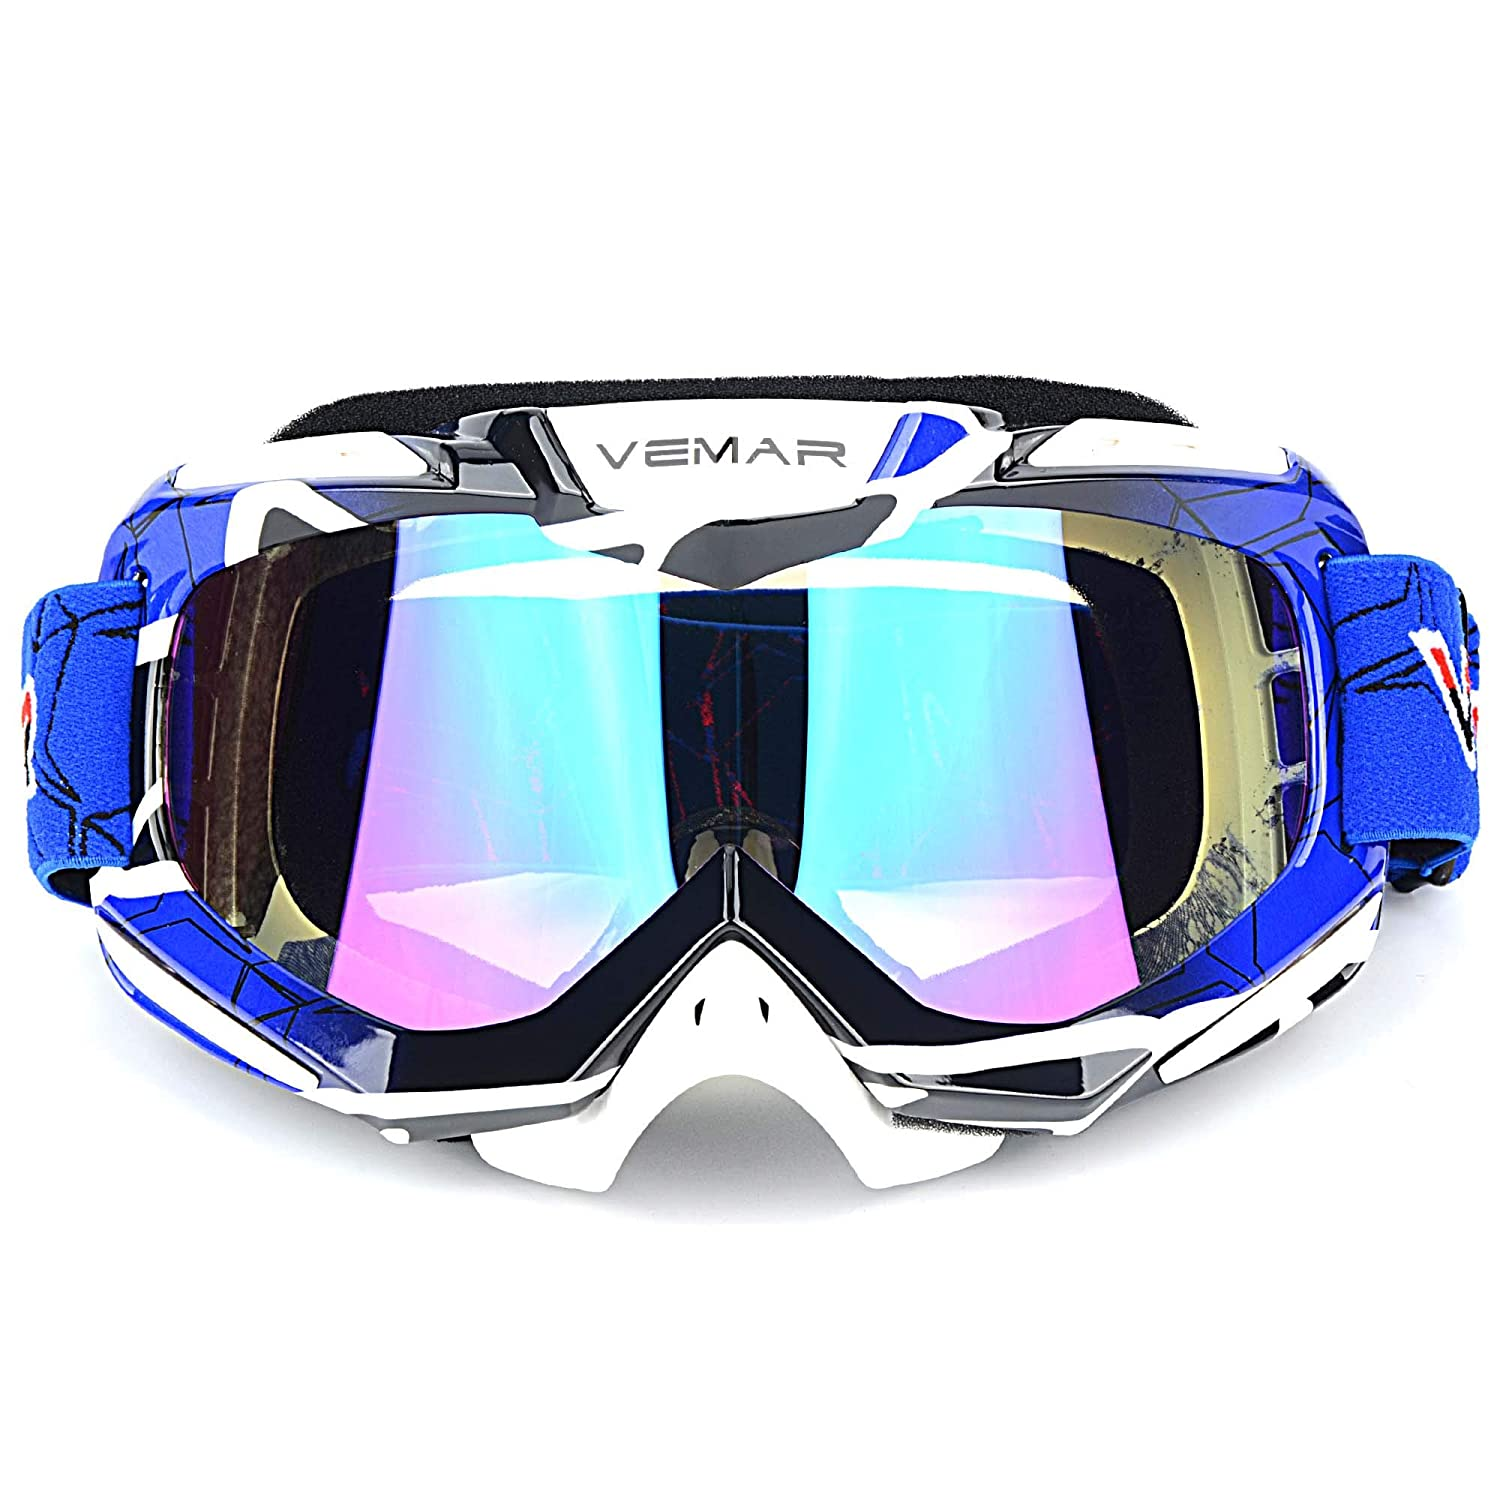 5a833257ecc Polarized Sport Motorcycle Motocross Goggles ATV Racing Goggles Dirt Bike  Tactical Riding Motorbike Goggle Glasses